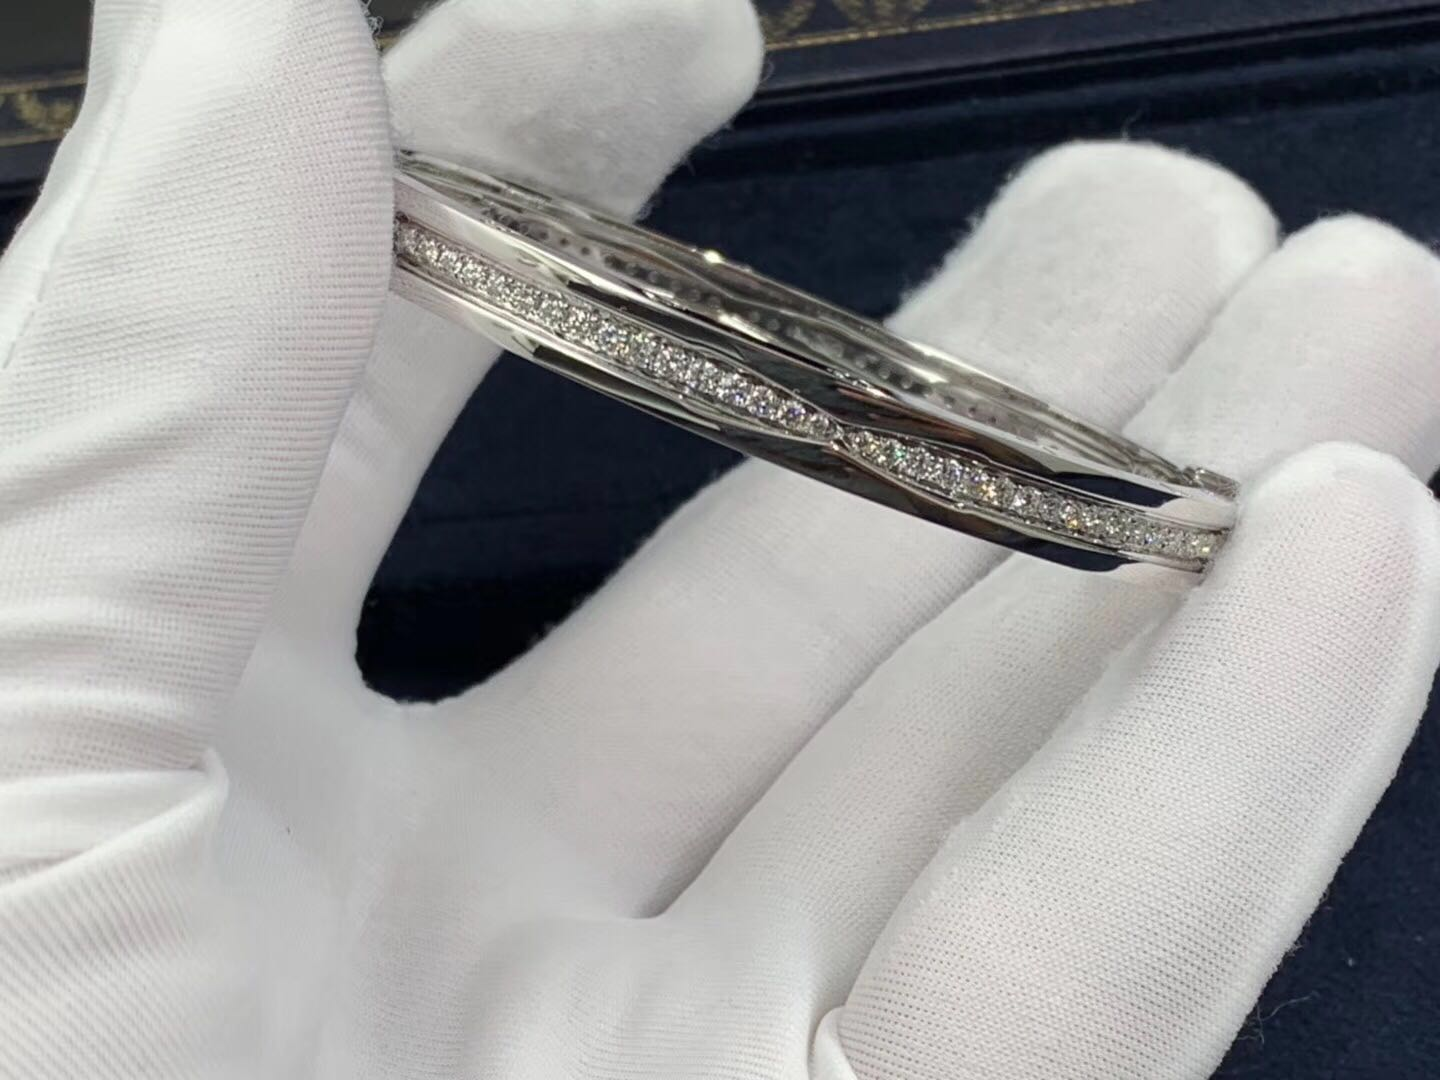 Bulgari B.zero1 pave diamond bangle bracelet in 18kt white gold